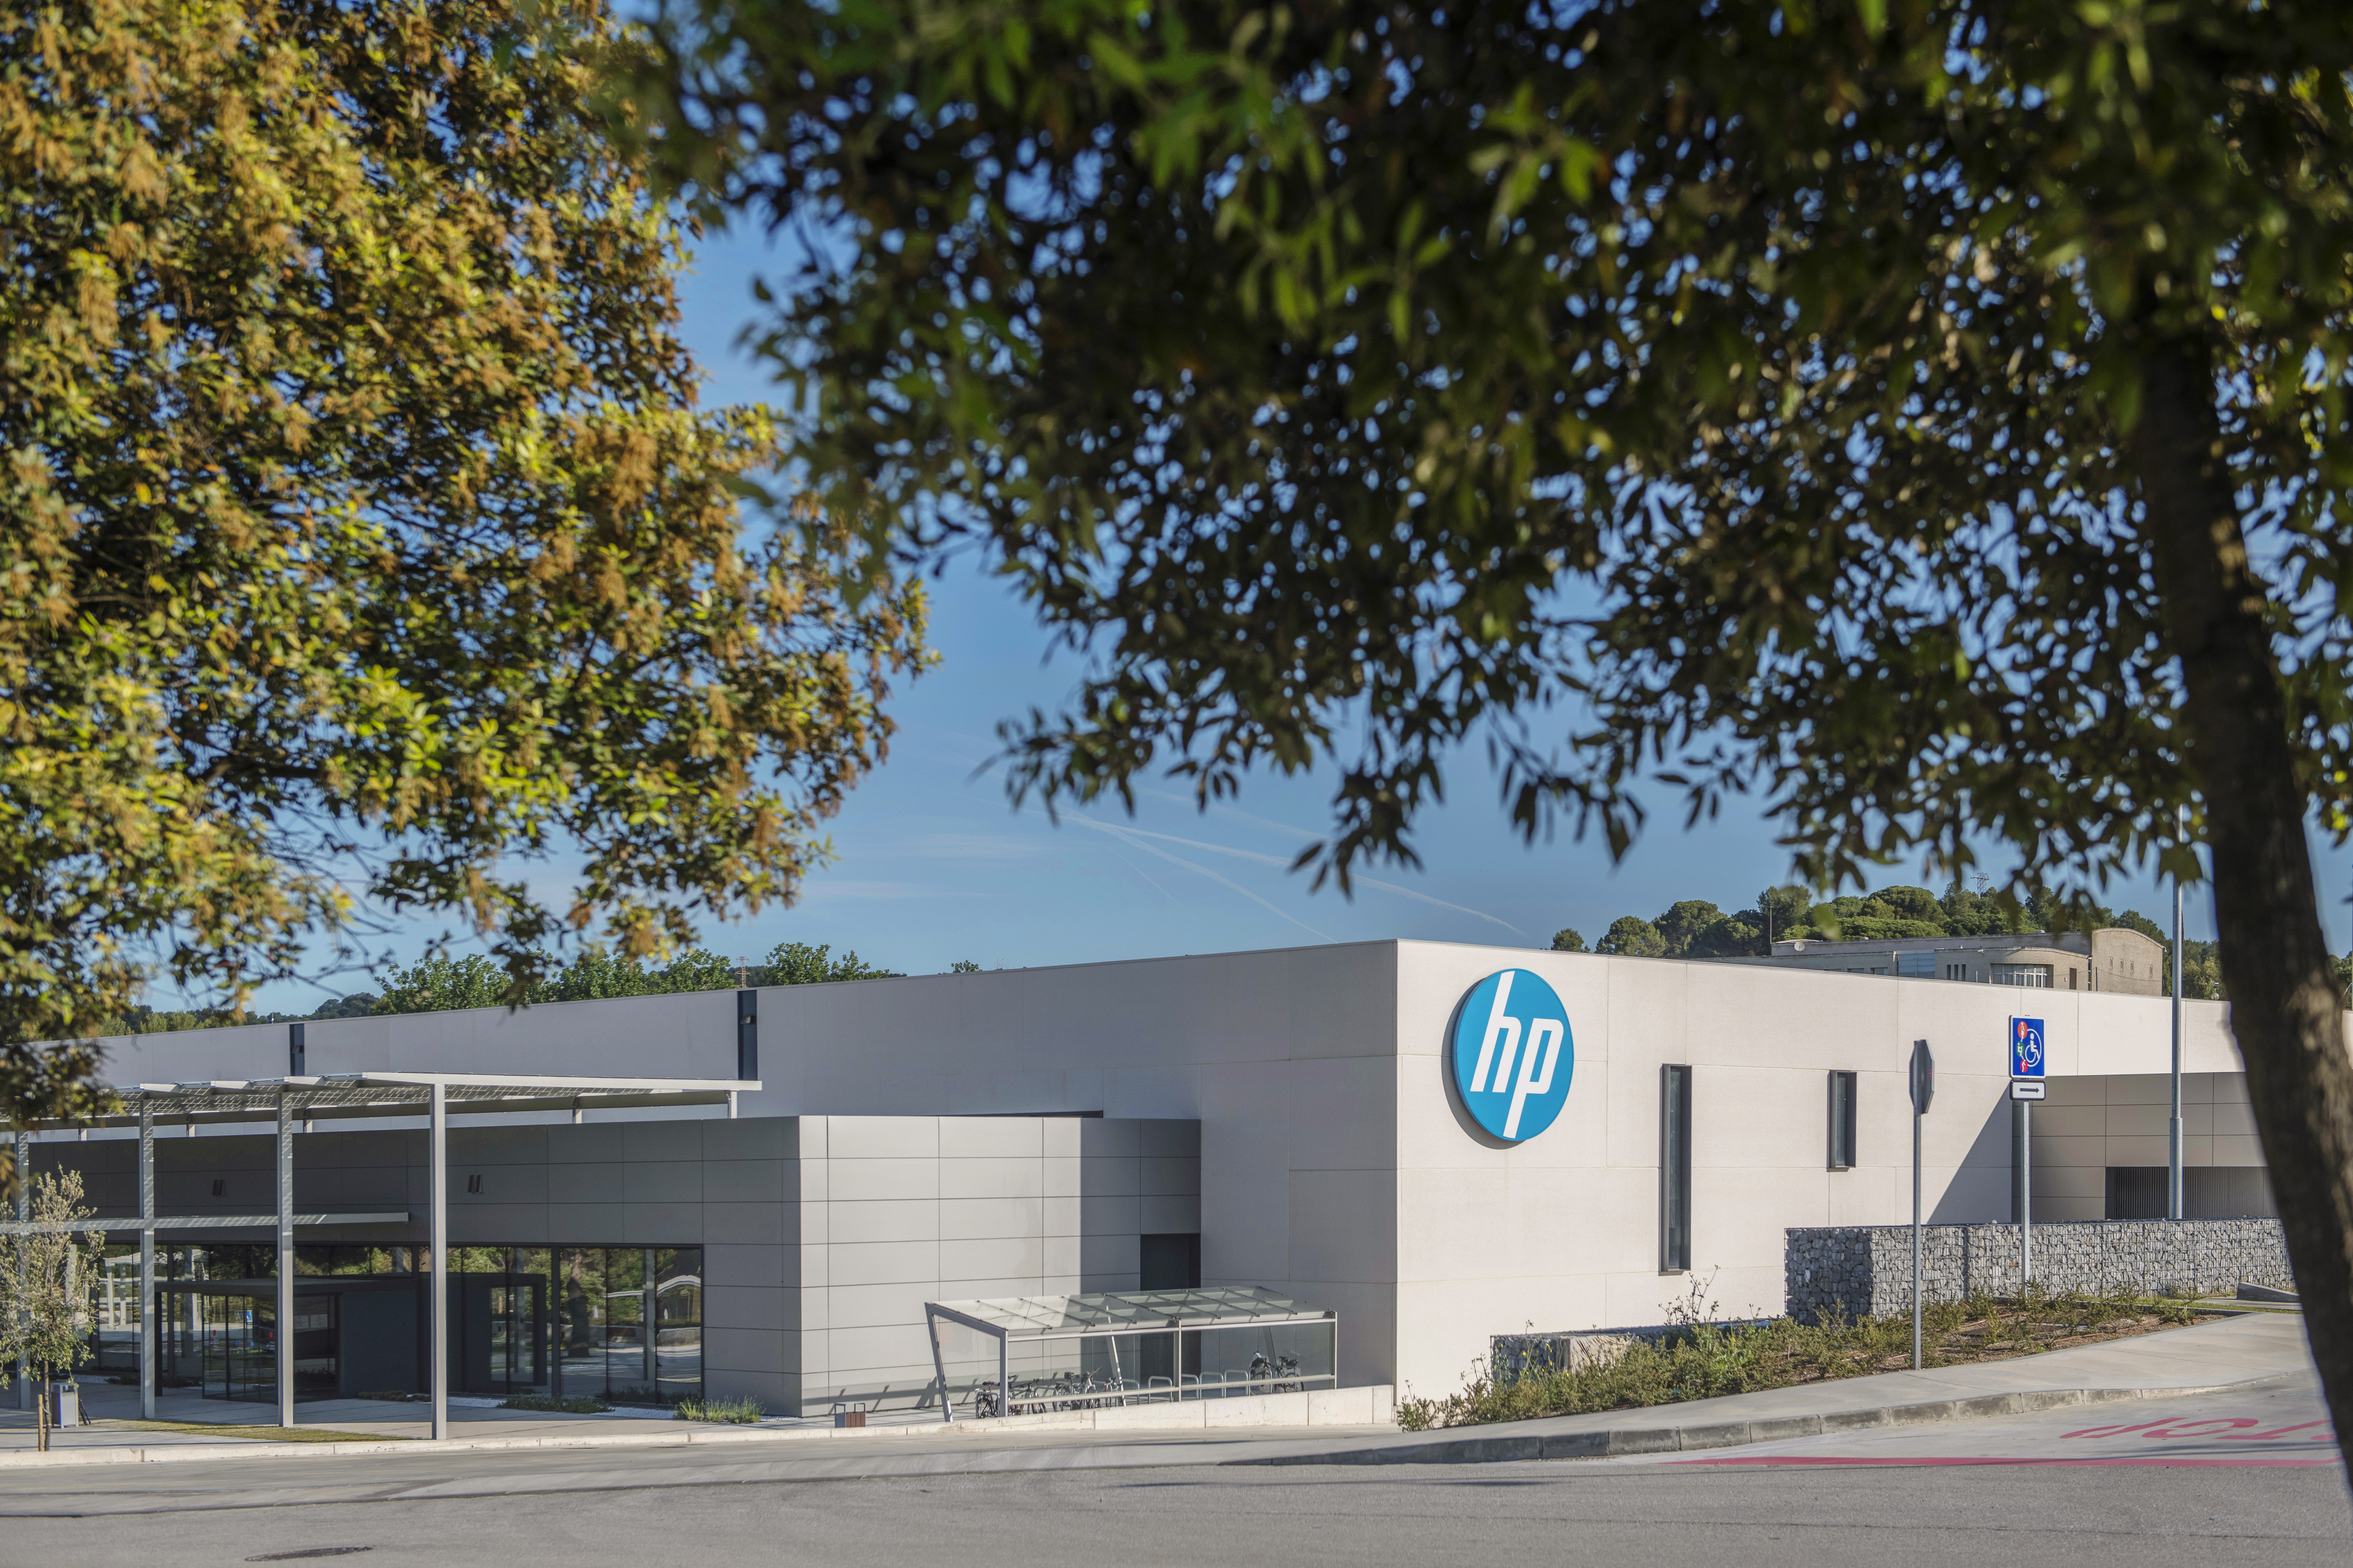 The HP 3D Printing and Digital Manufacturing Center of Excellence. Photo via Vicens Gimenez/HP.